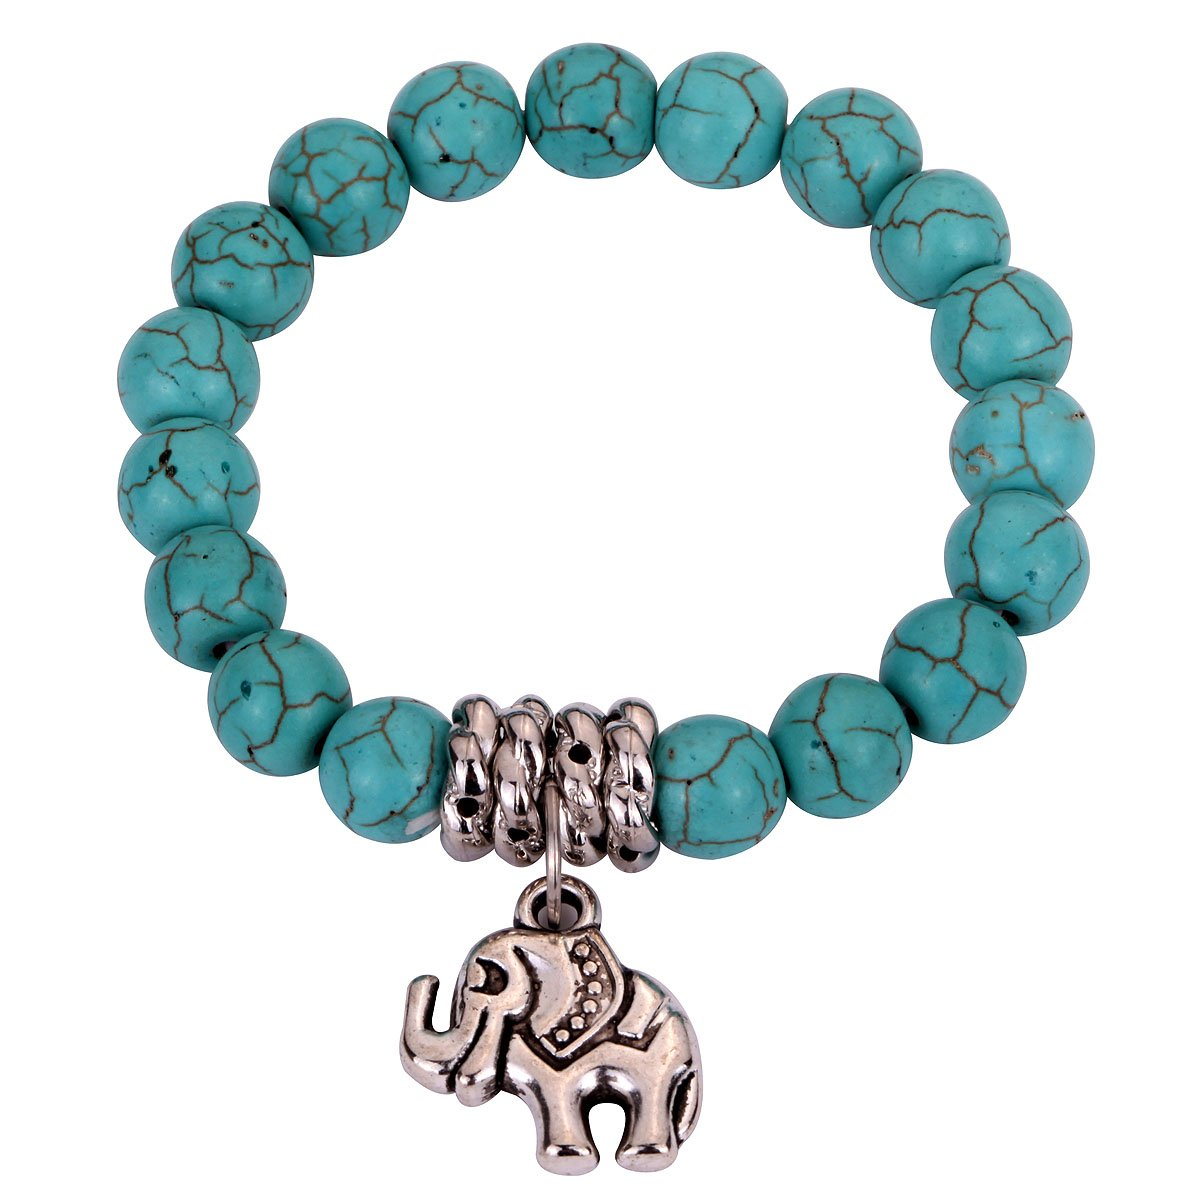 6cb0dfae5 YAZILIND Jewellery Gift Chap Turquoise Beads Tibetan Silver Cute Elephant  Stretch Bangle Bracelet for Women Girls: YAZILIND JEWELRY LIMITED:  Amazon.co.uk: ...